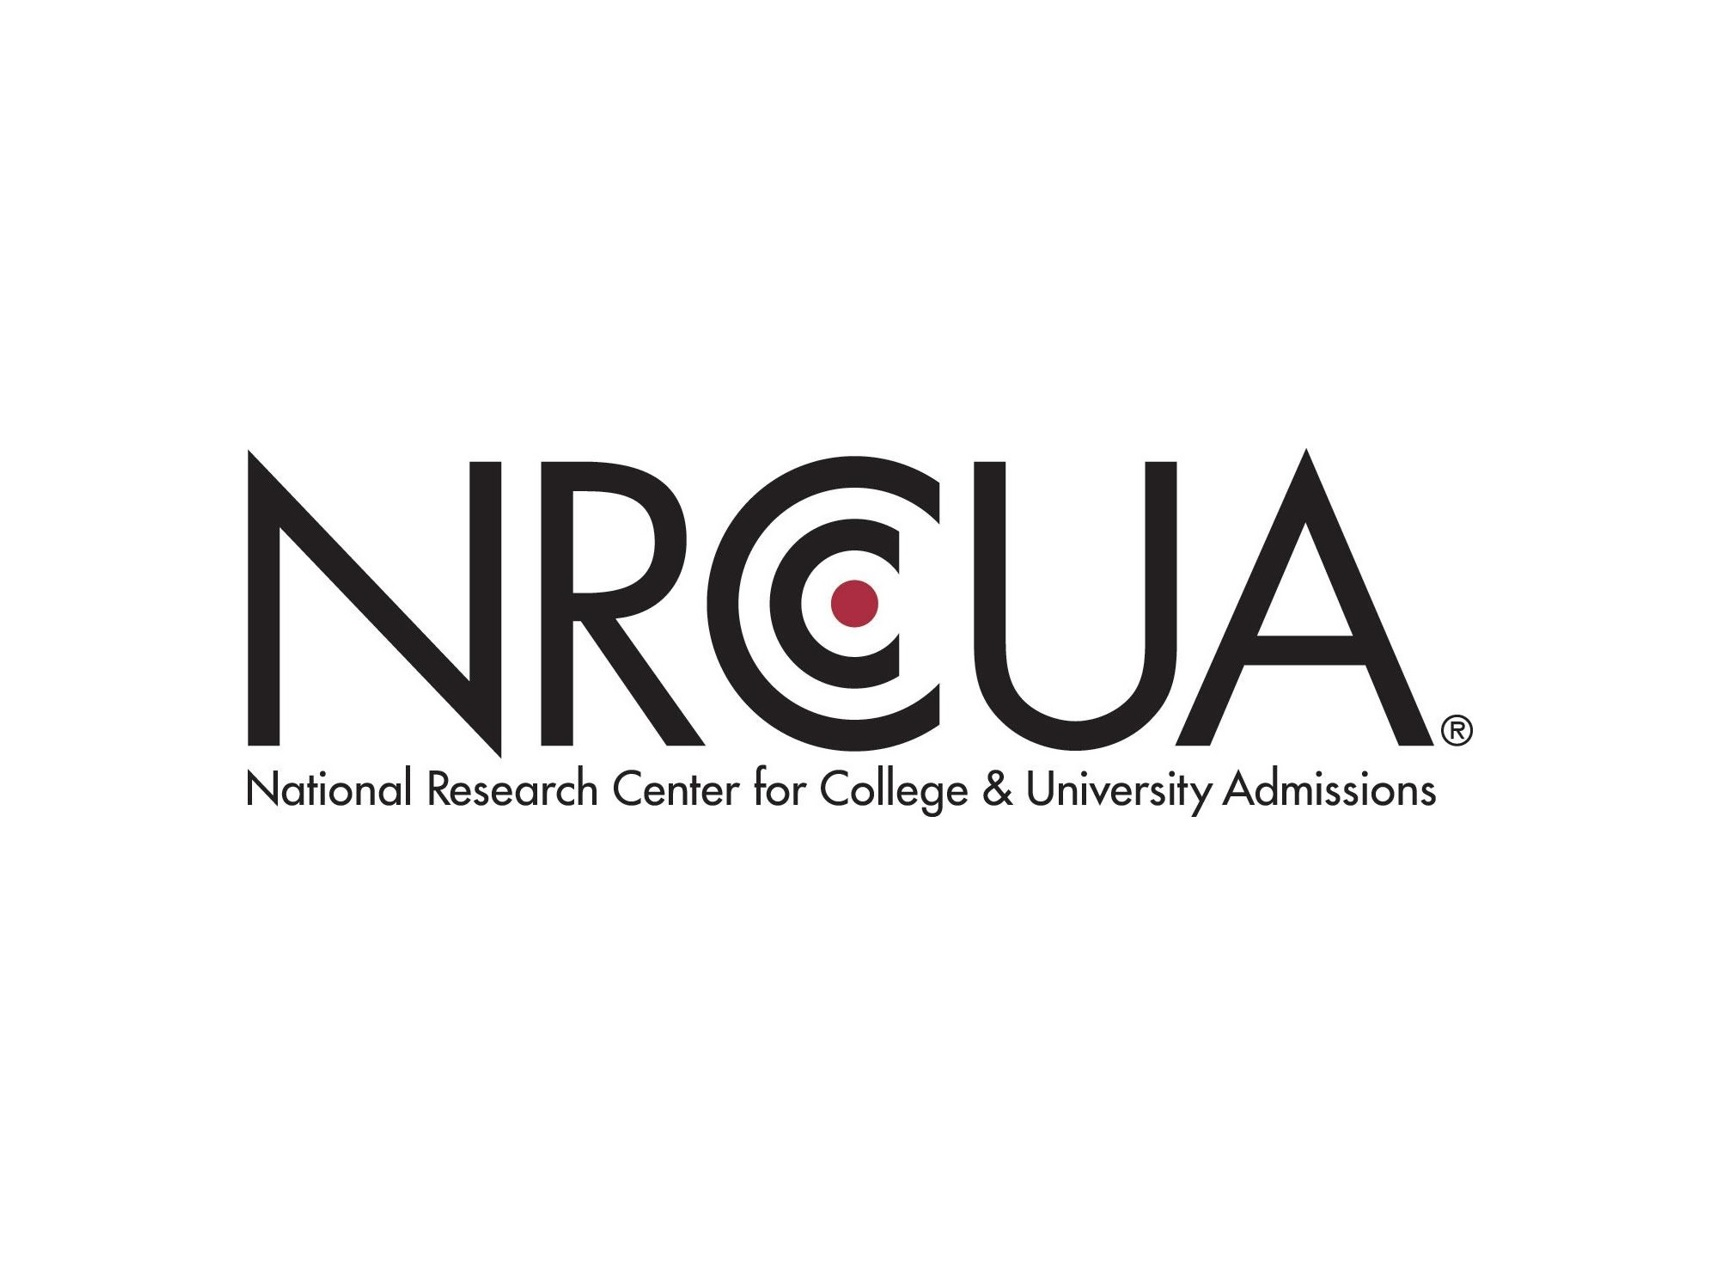 The NATIONAL RESEARCH CENTER FOR COLLEGE & UNIVERSITY ADMISSIONS